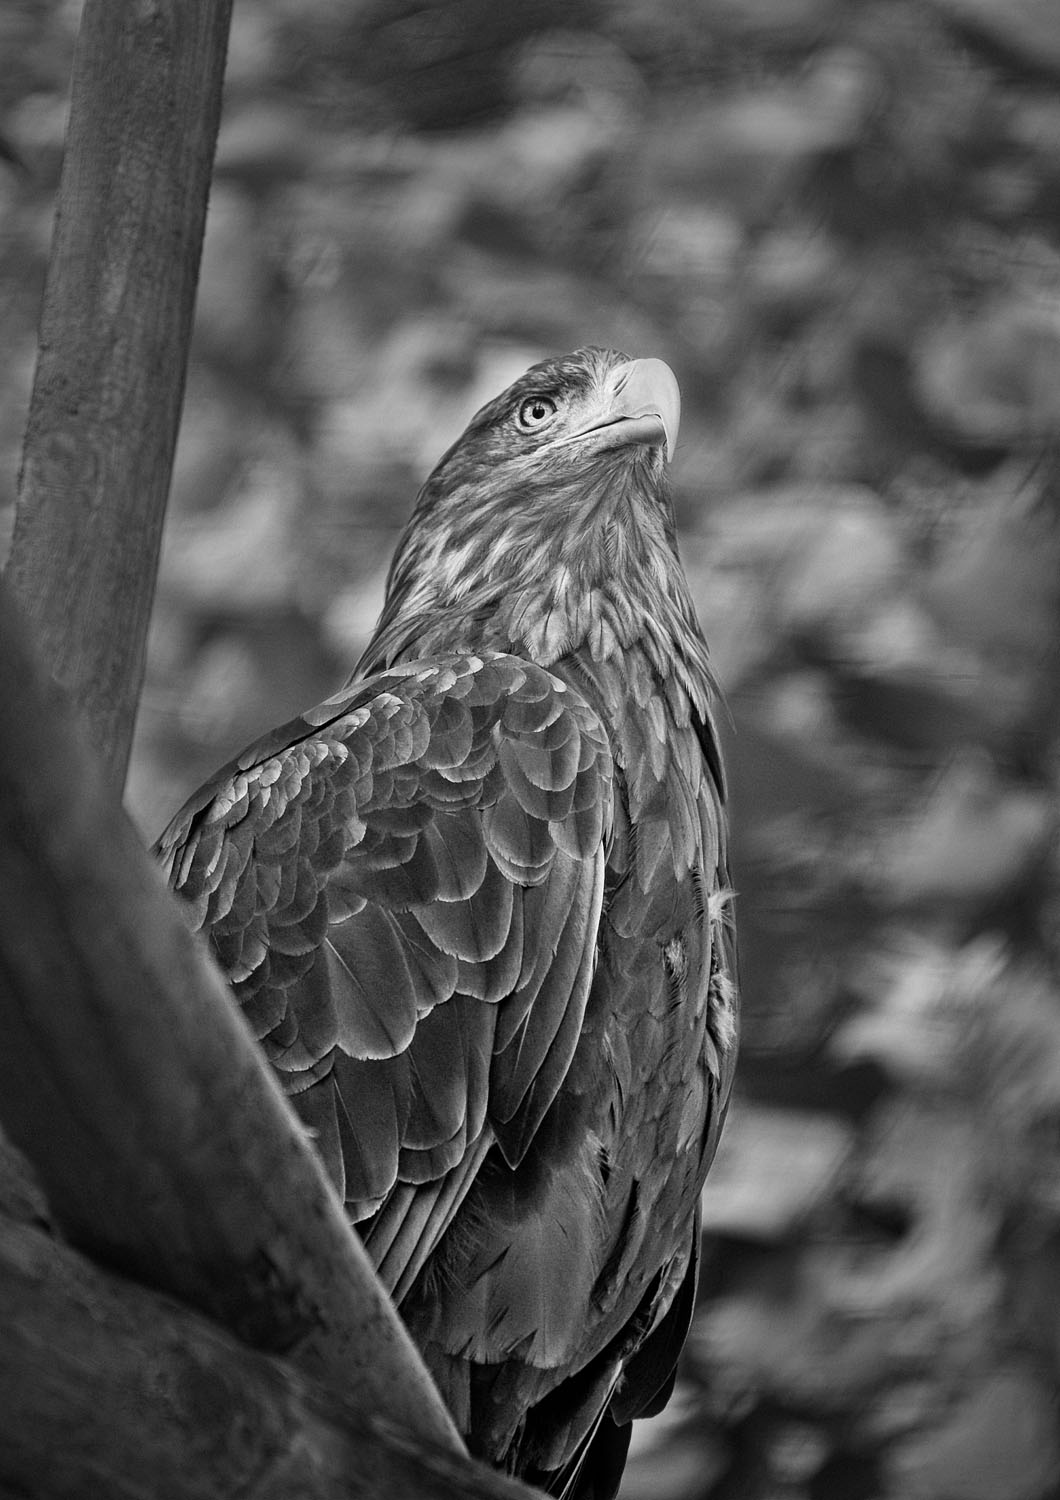 belfast zoo u2019s annual photography competition